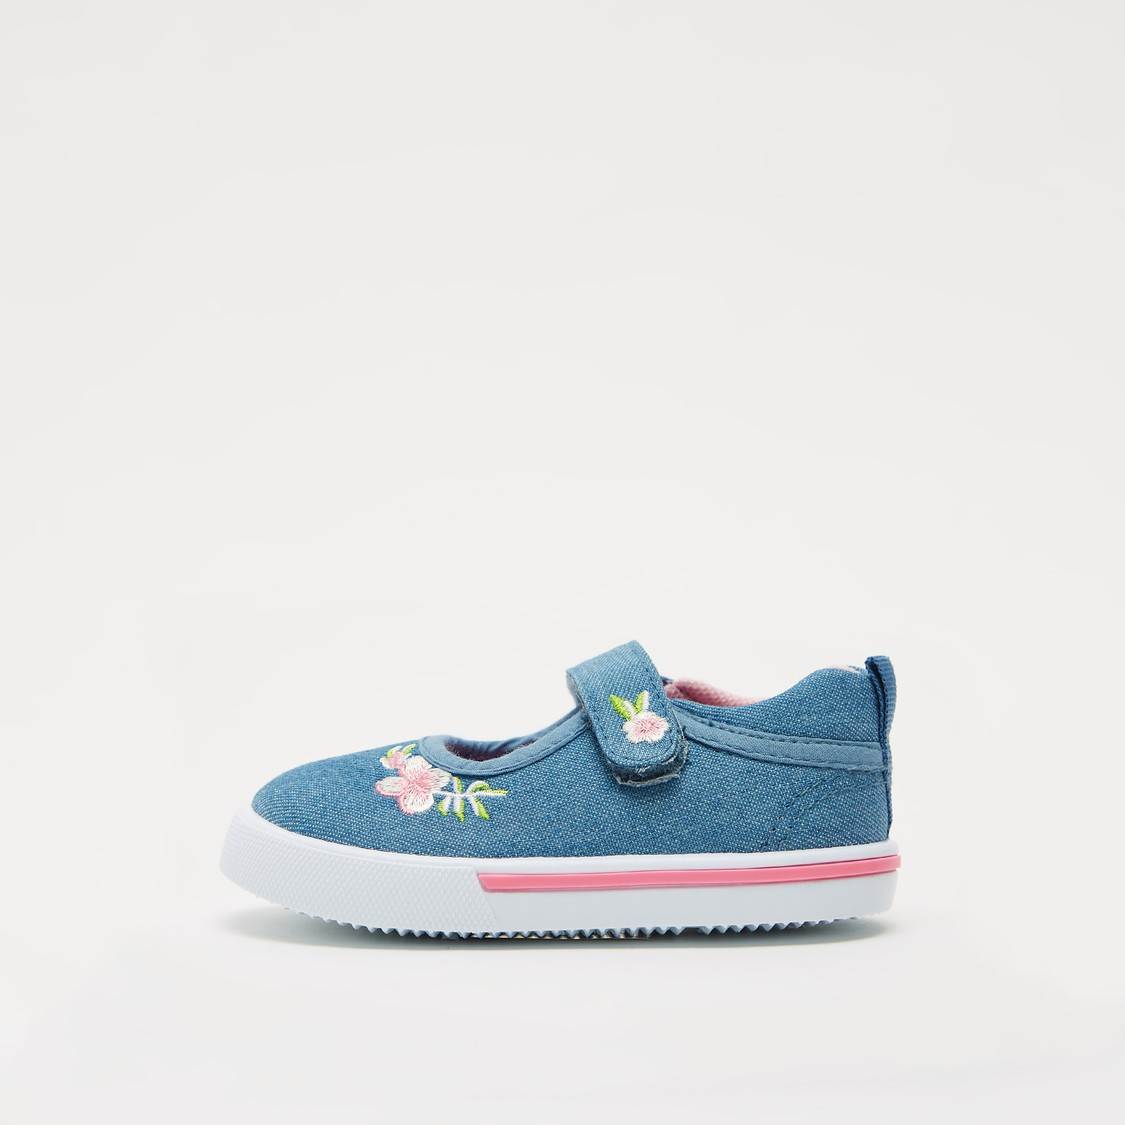 Floral Embroidered Shoes with Hook and Loop Closure